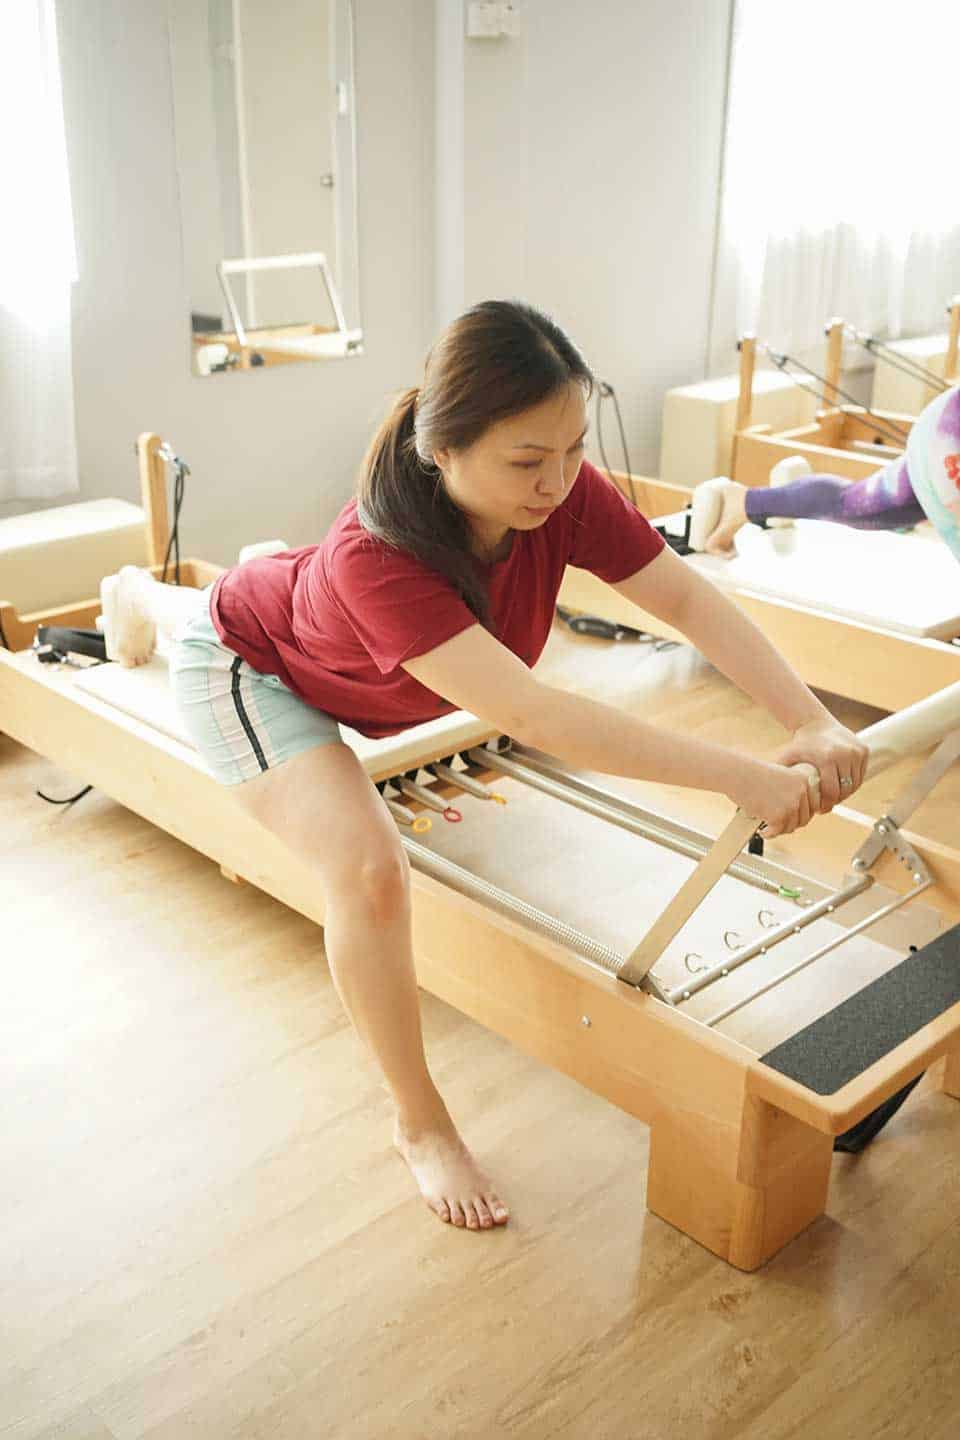 A Client works on their knee pain by doing Clinical Pilates moves that help strengthen the joint.